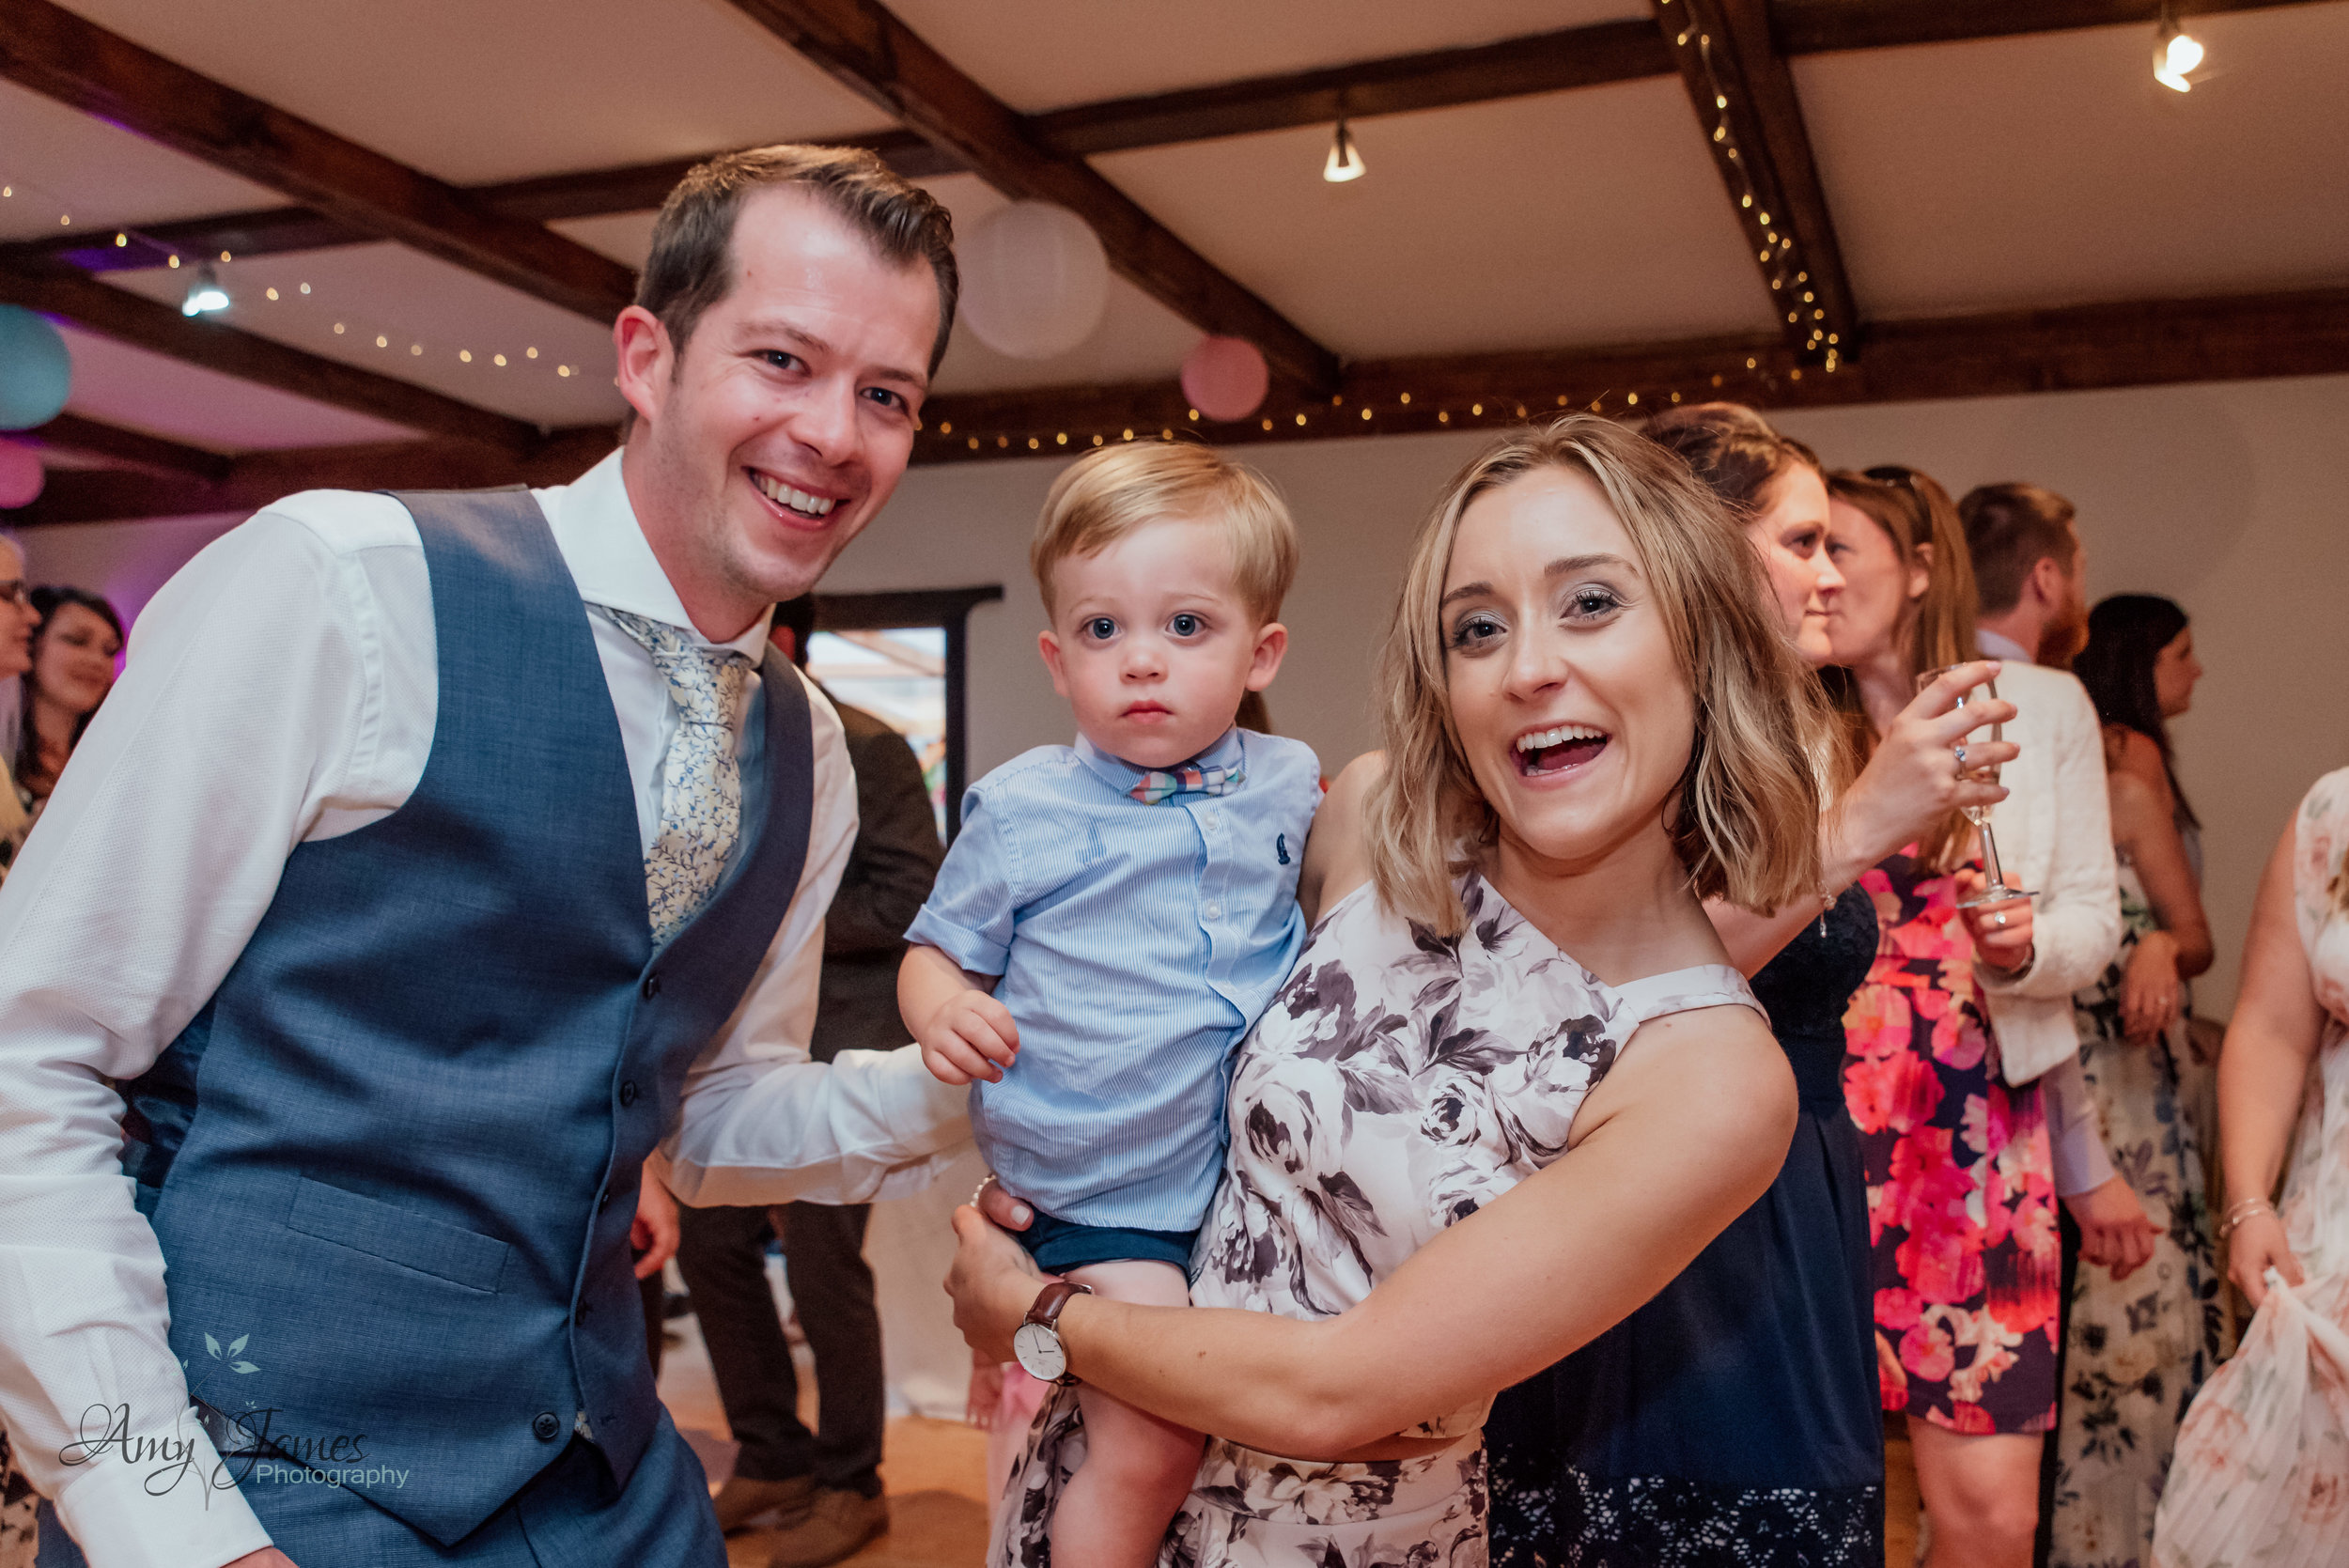 Dancefloor photo at Taplins Place wedding venue Hampshire by Amy James Photography Hampshire and Surrey wedding photographer